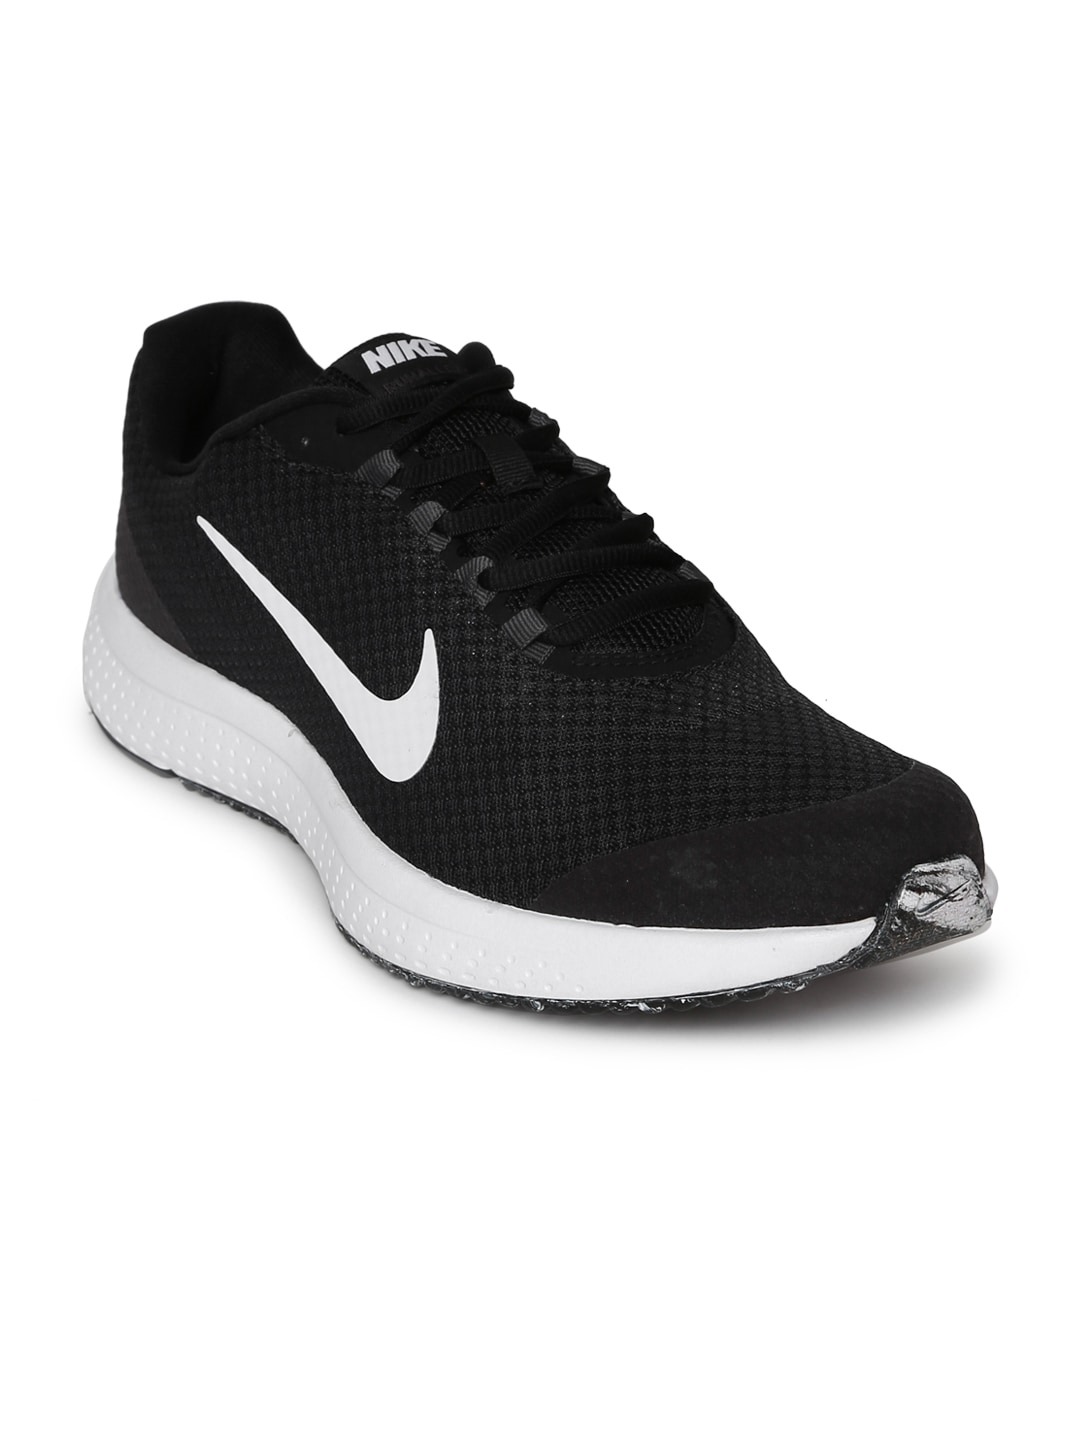 01fea5f3f267 Nike Black Shoes - Buy Nike Black Shoes Online in India